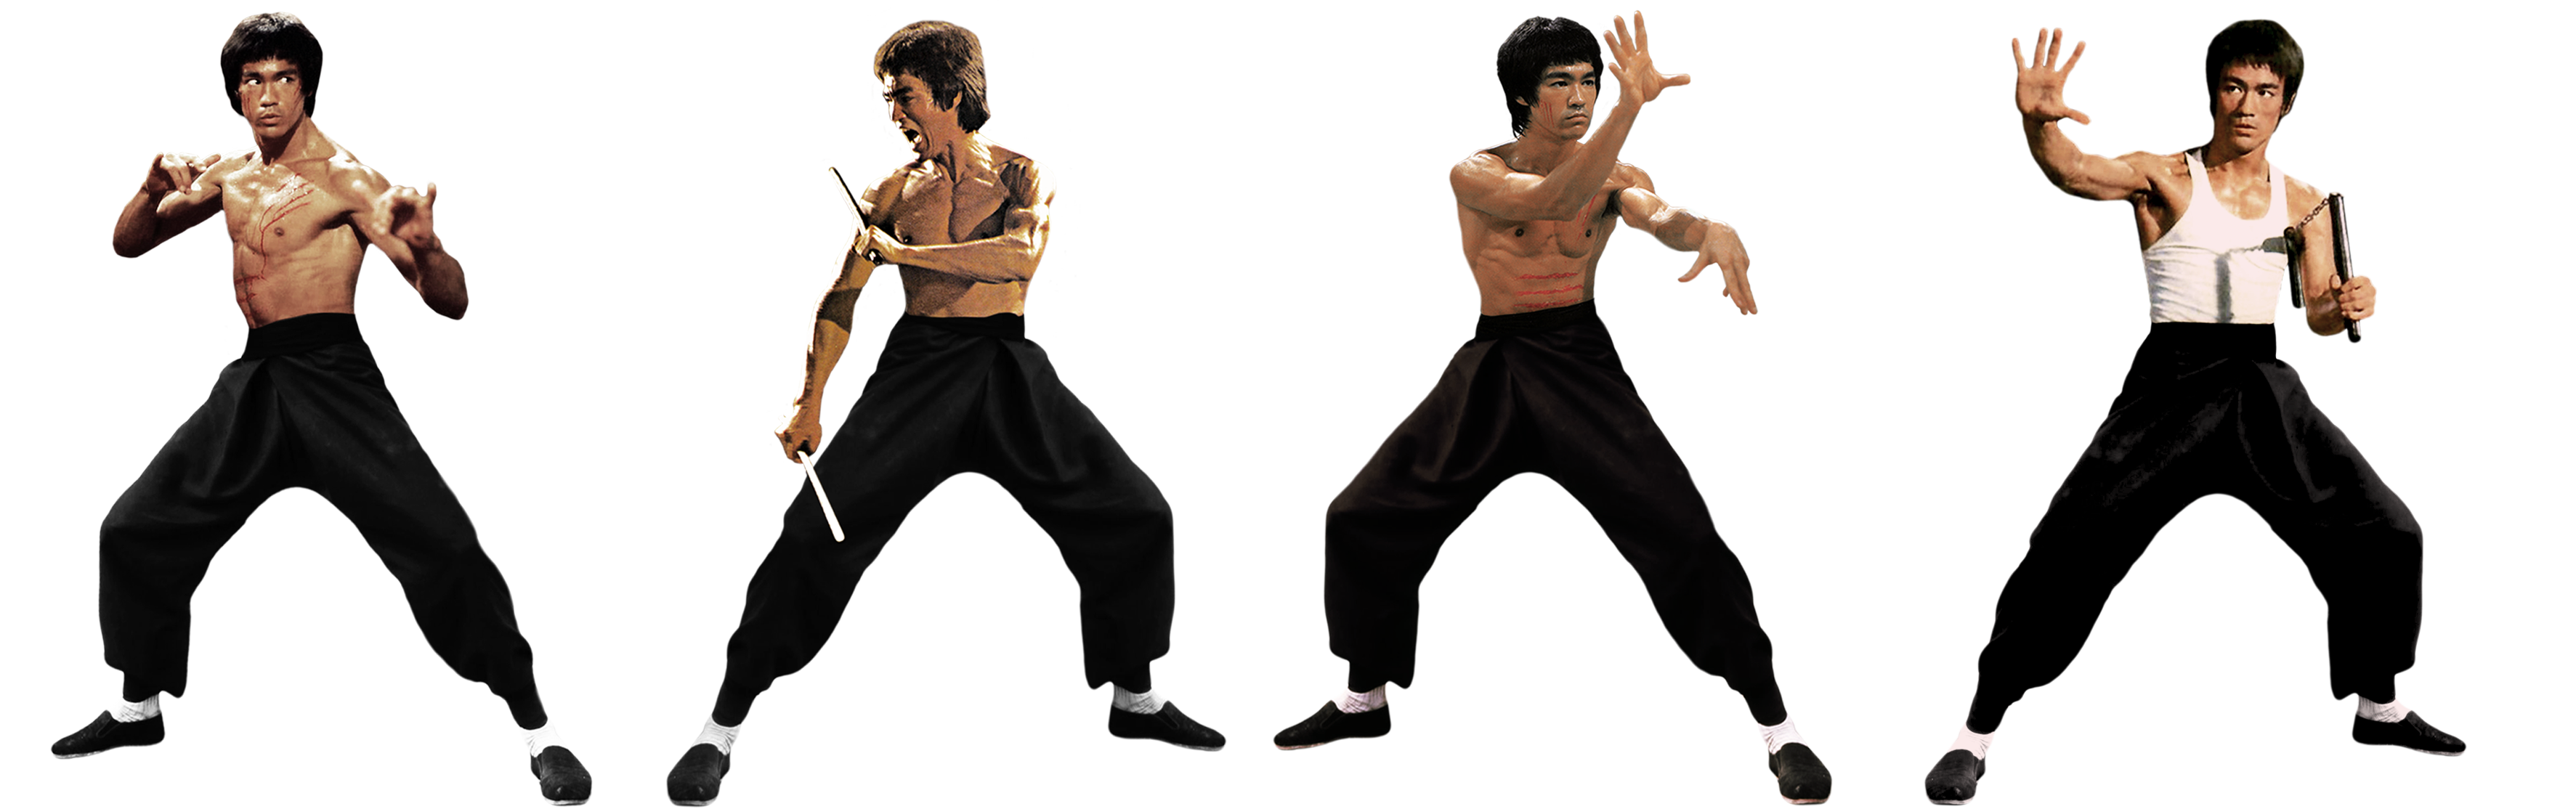 Bruce Lee Transparent Background PNG Image